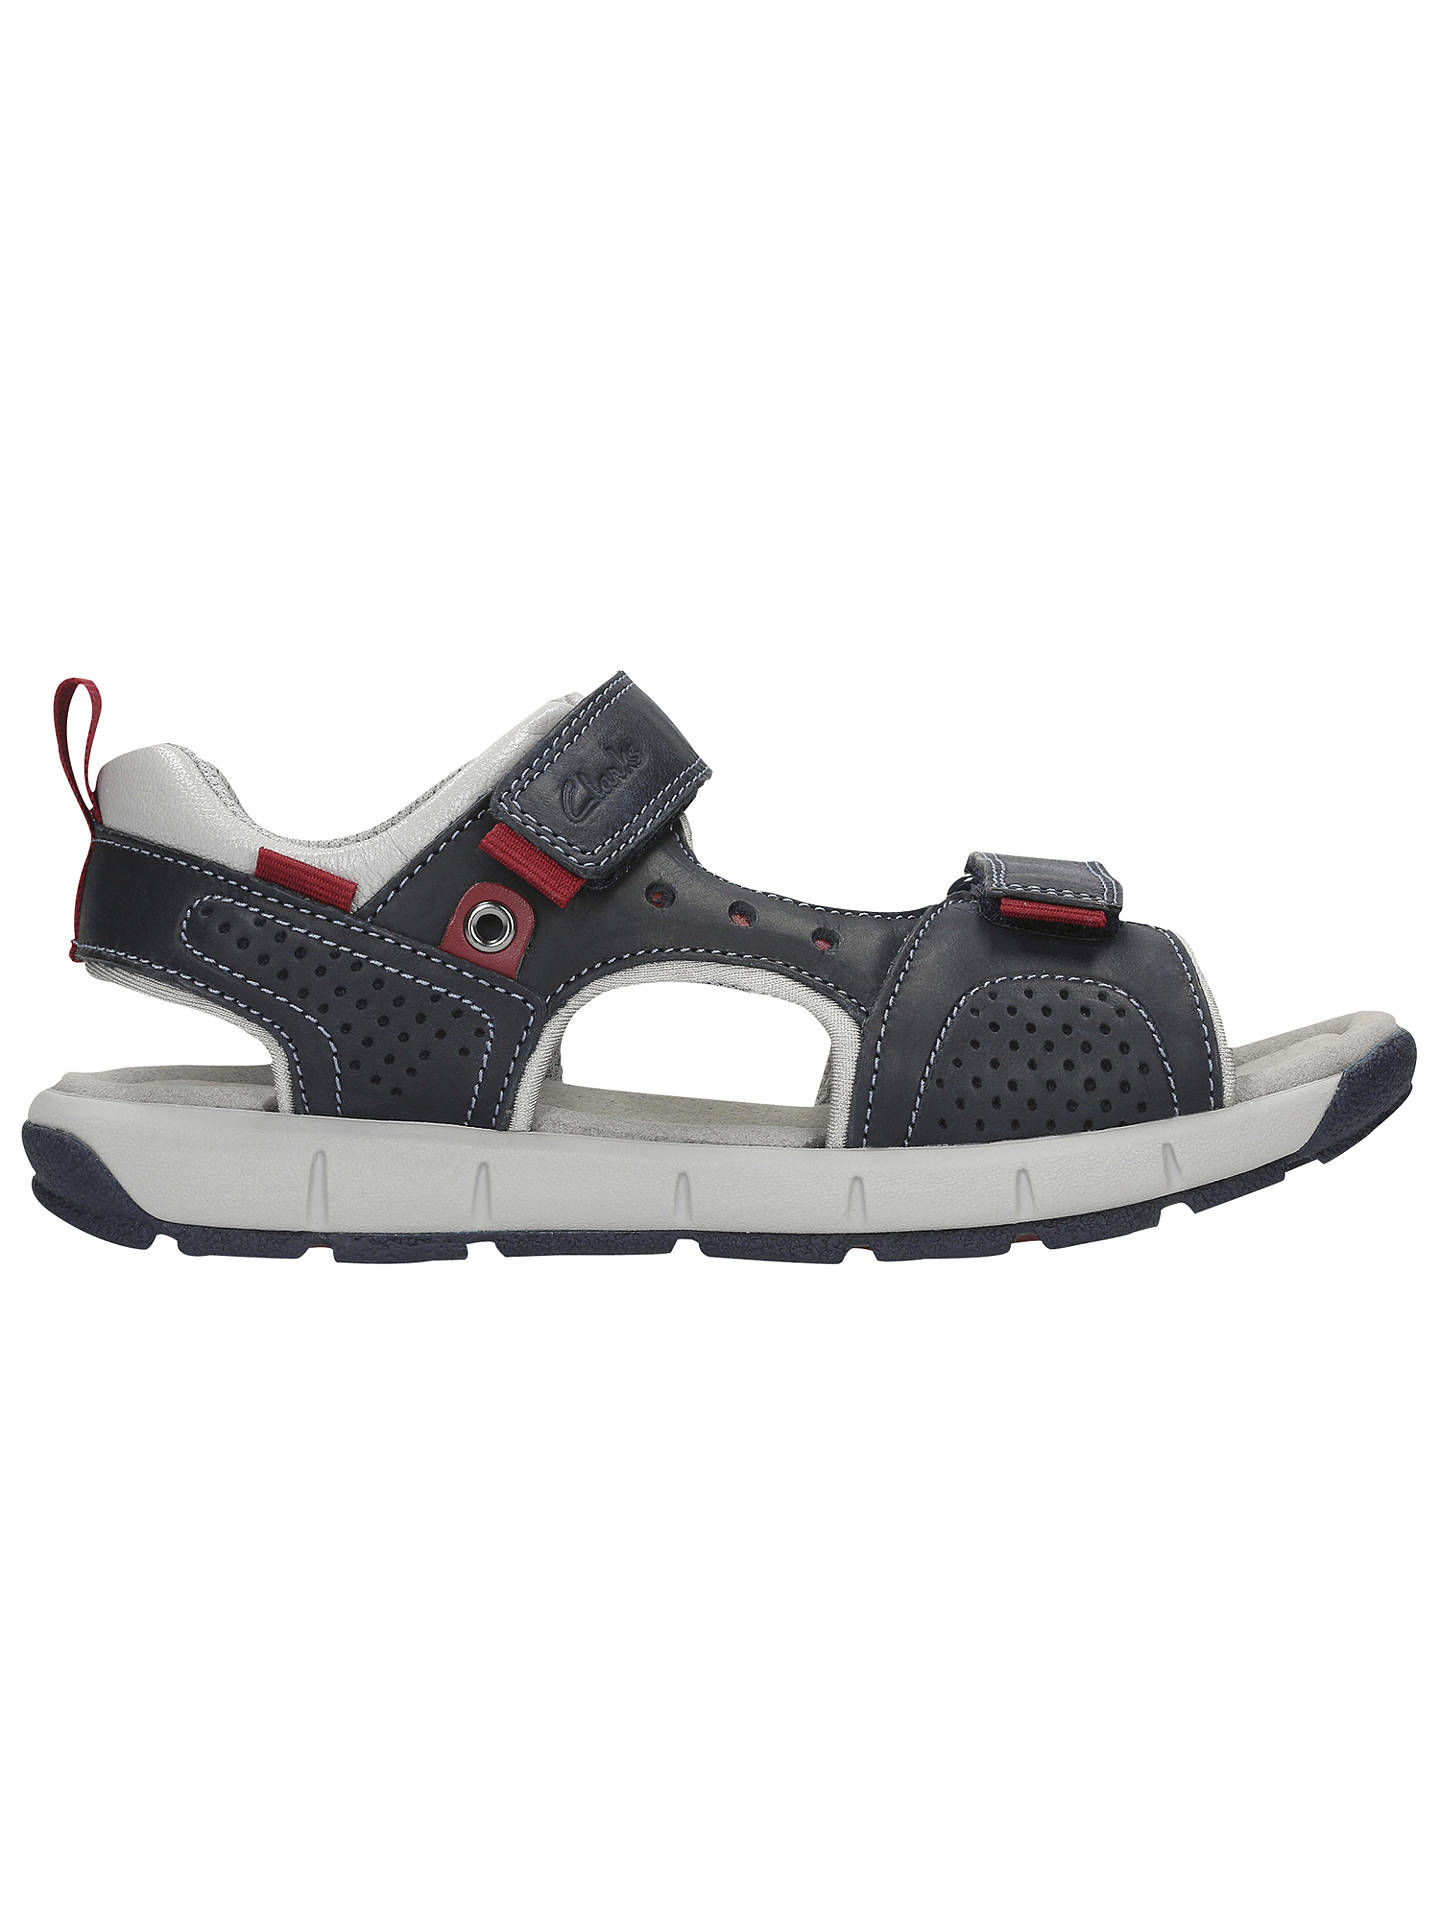 Clarks Infant Jolly Wild Sandals, Navy at John Lewis & Partners